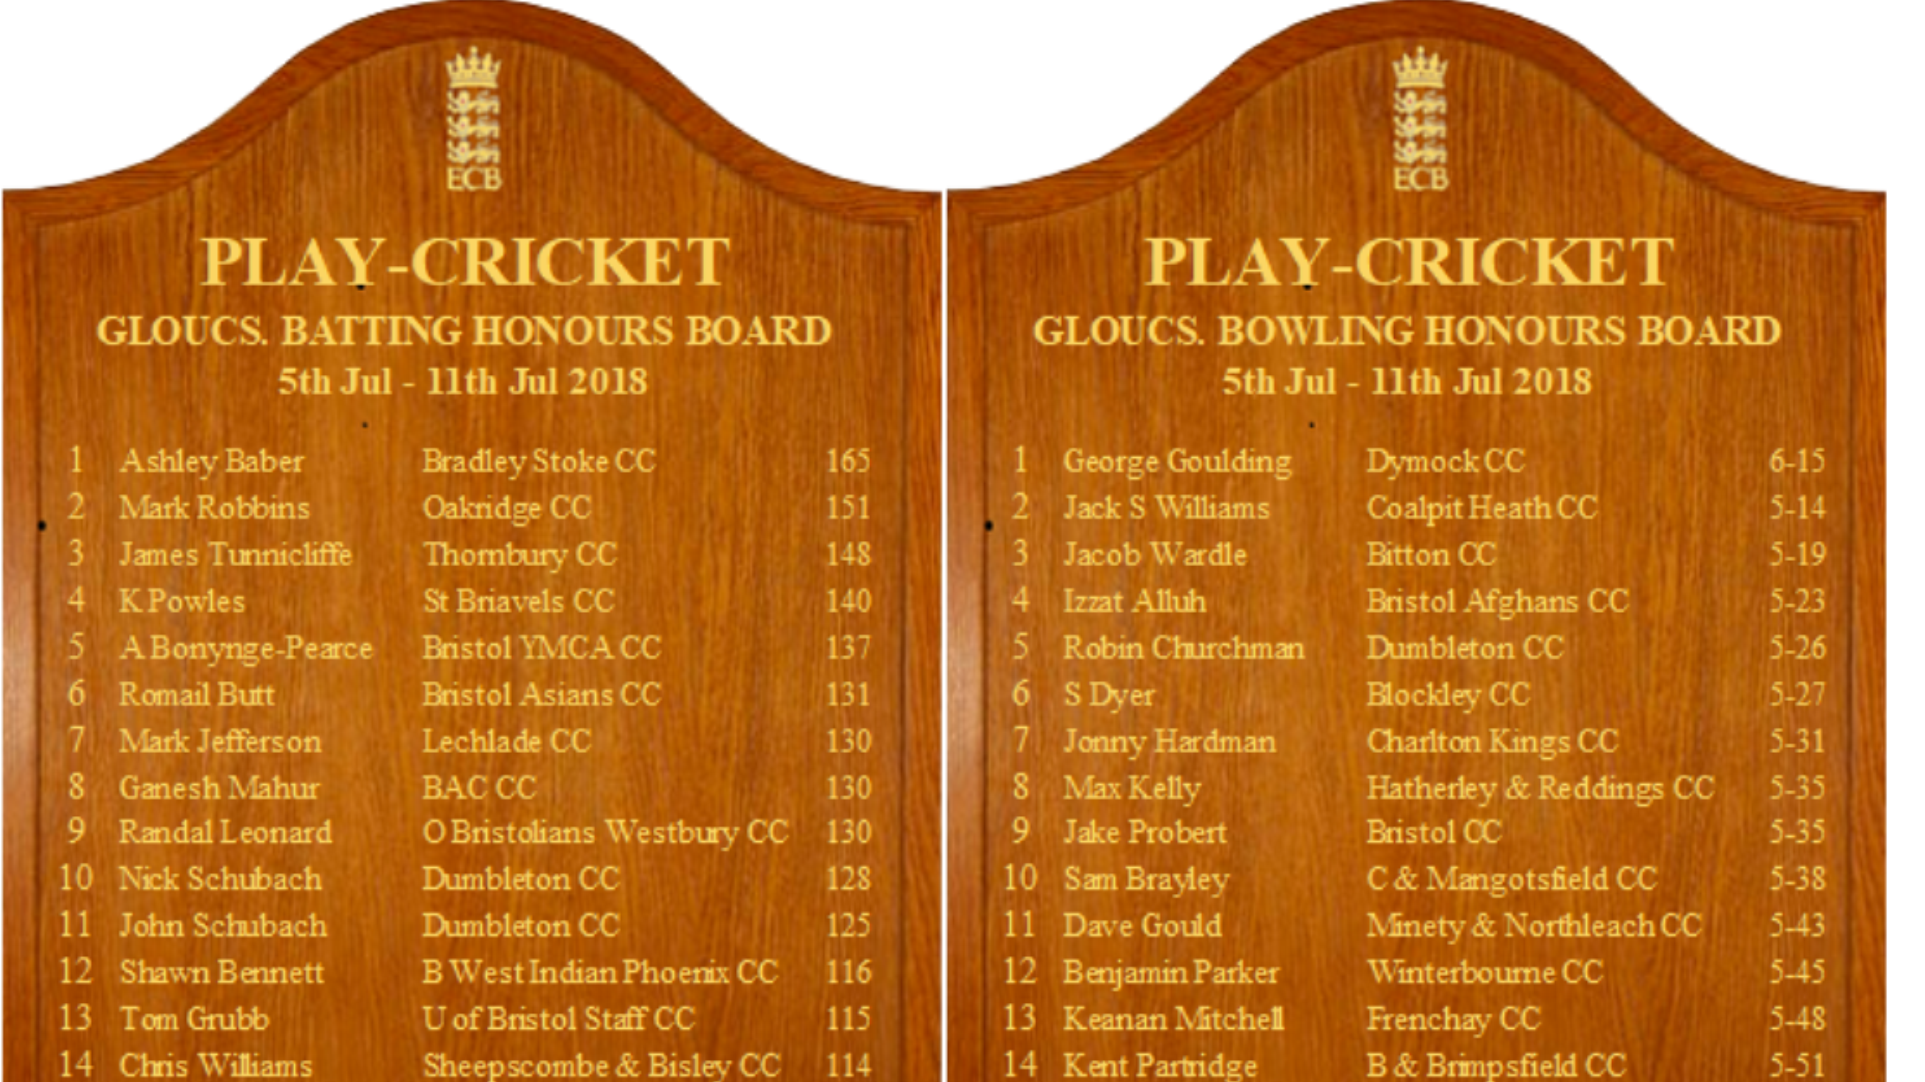 Well done to everyone who has made it on to the Week 10 Honours Boards!